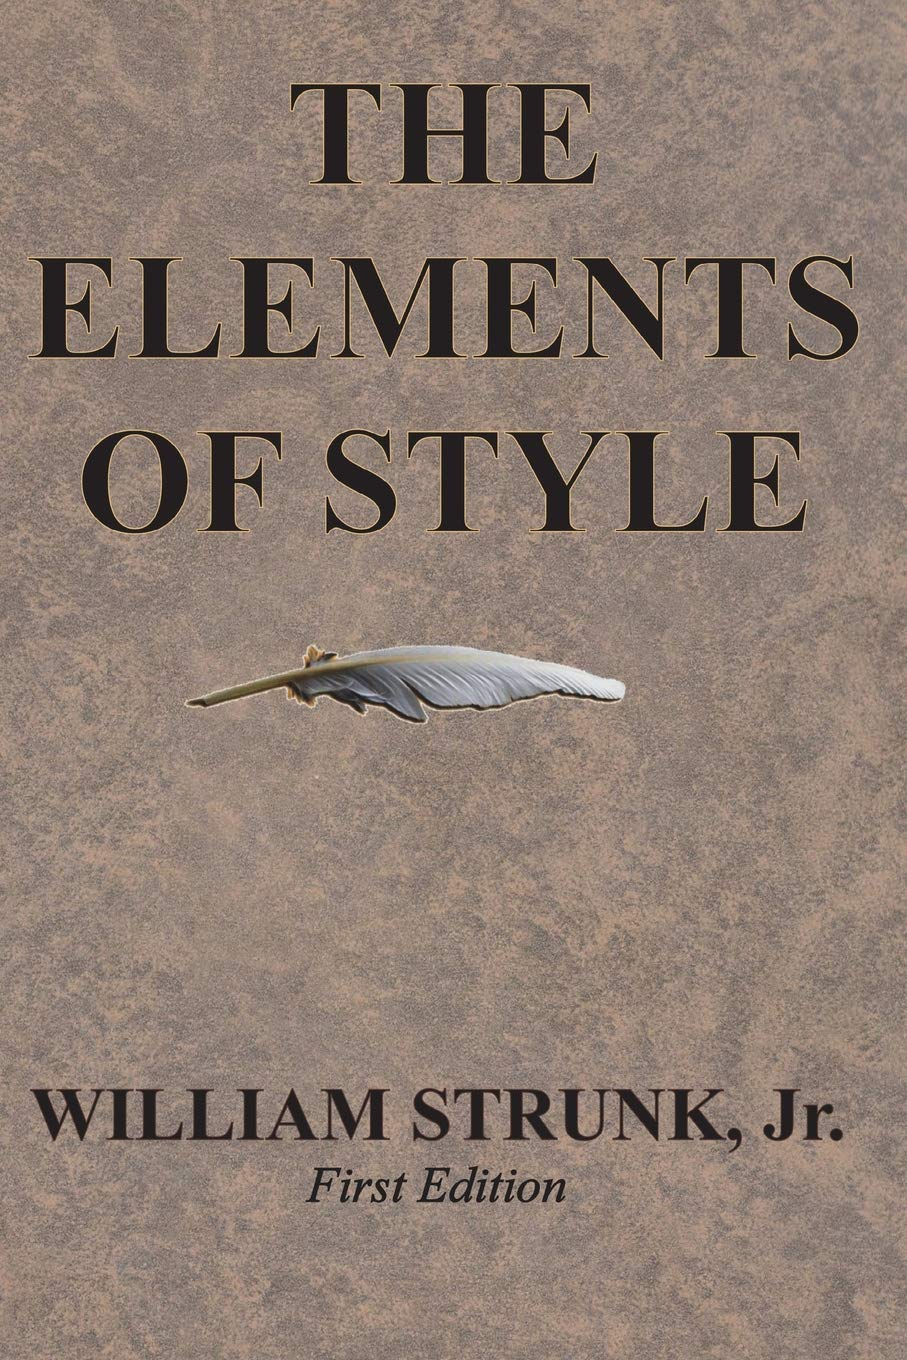 The Elements of Style: William Strunk Jr : 9781945644016